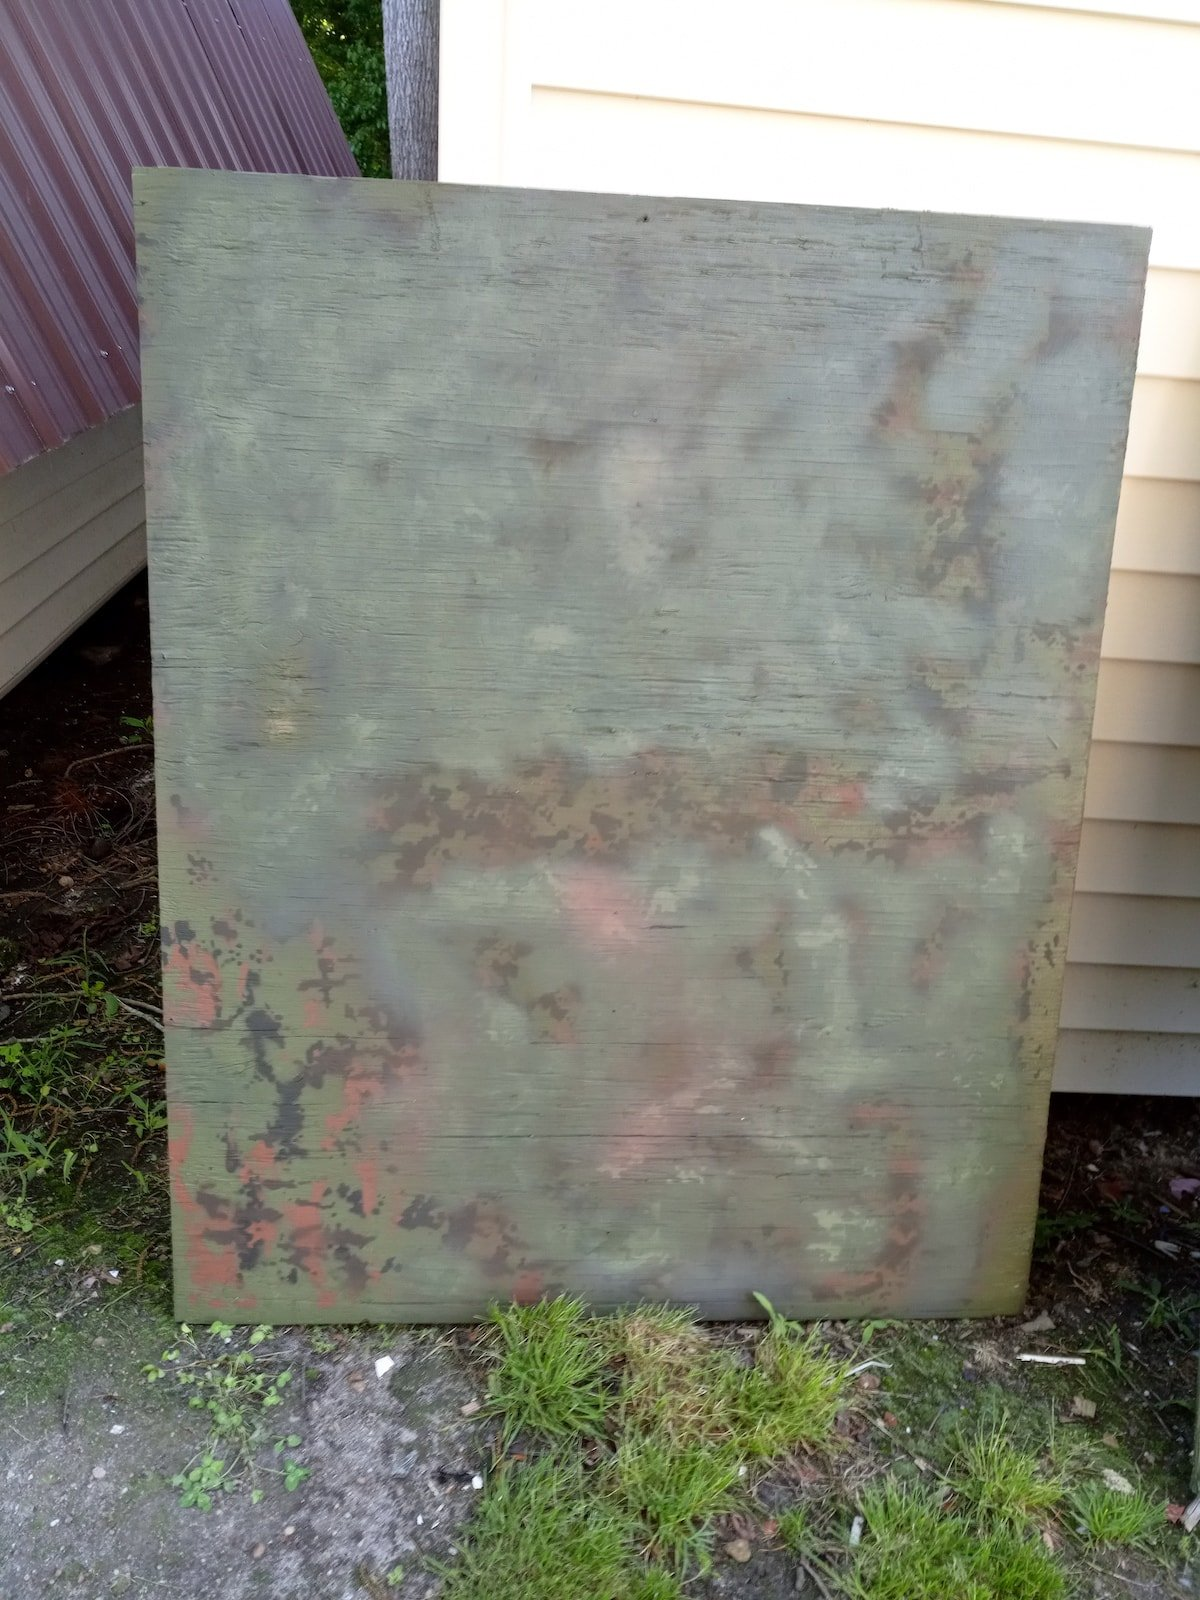 Duck Blind Camoflage Test Boards